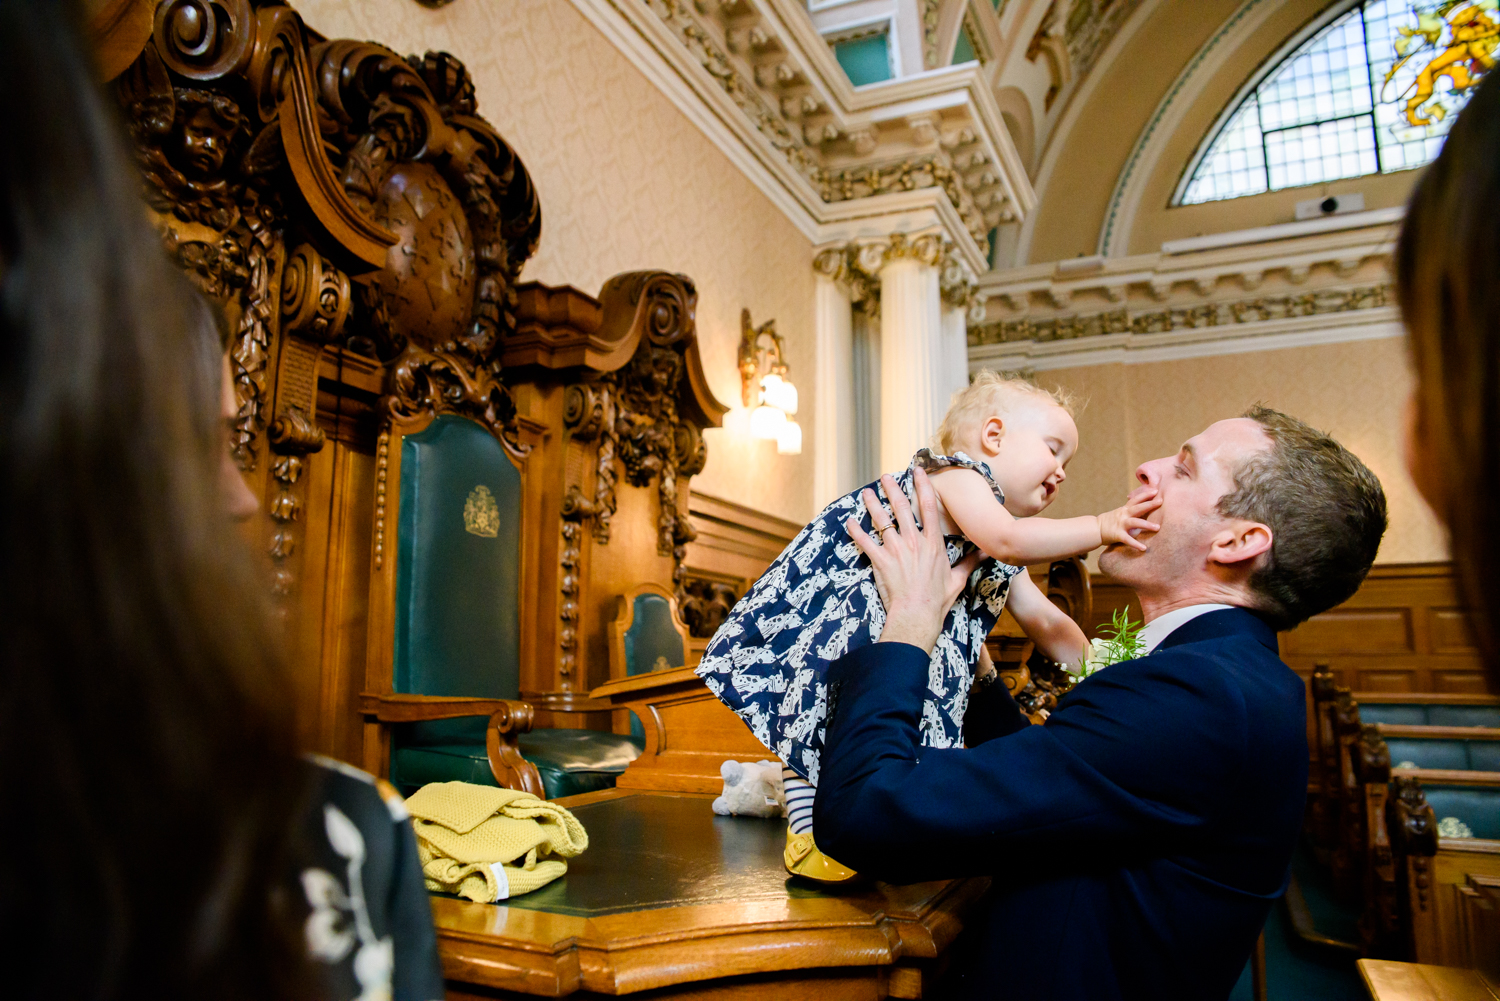 Toddler playing in Council Chamber Stockport